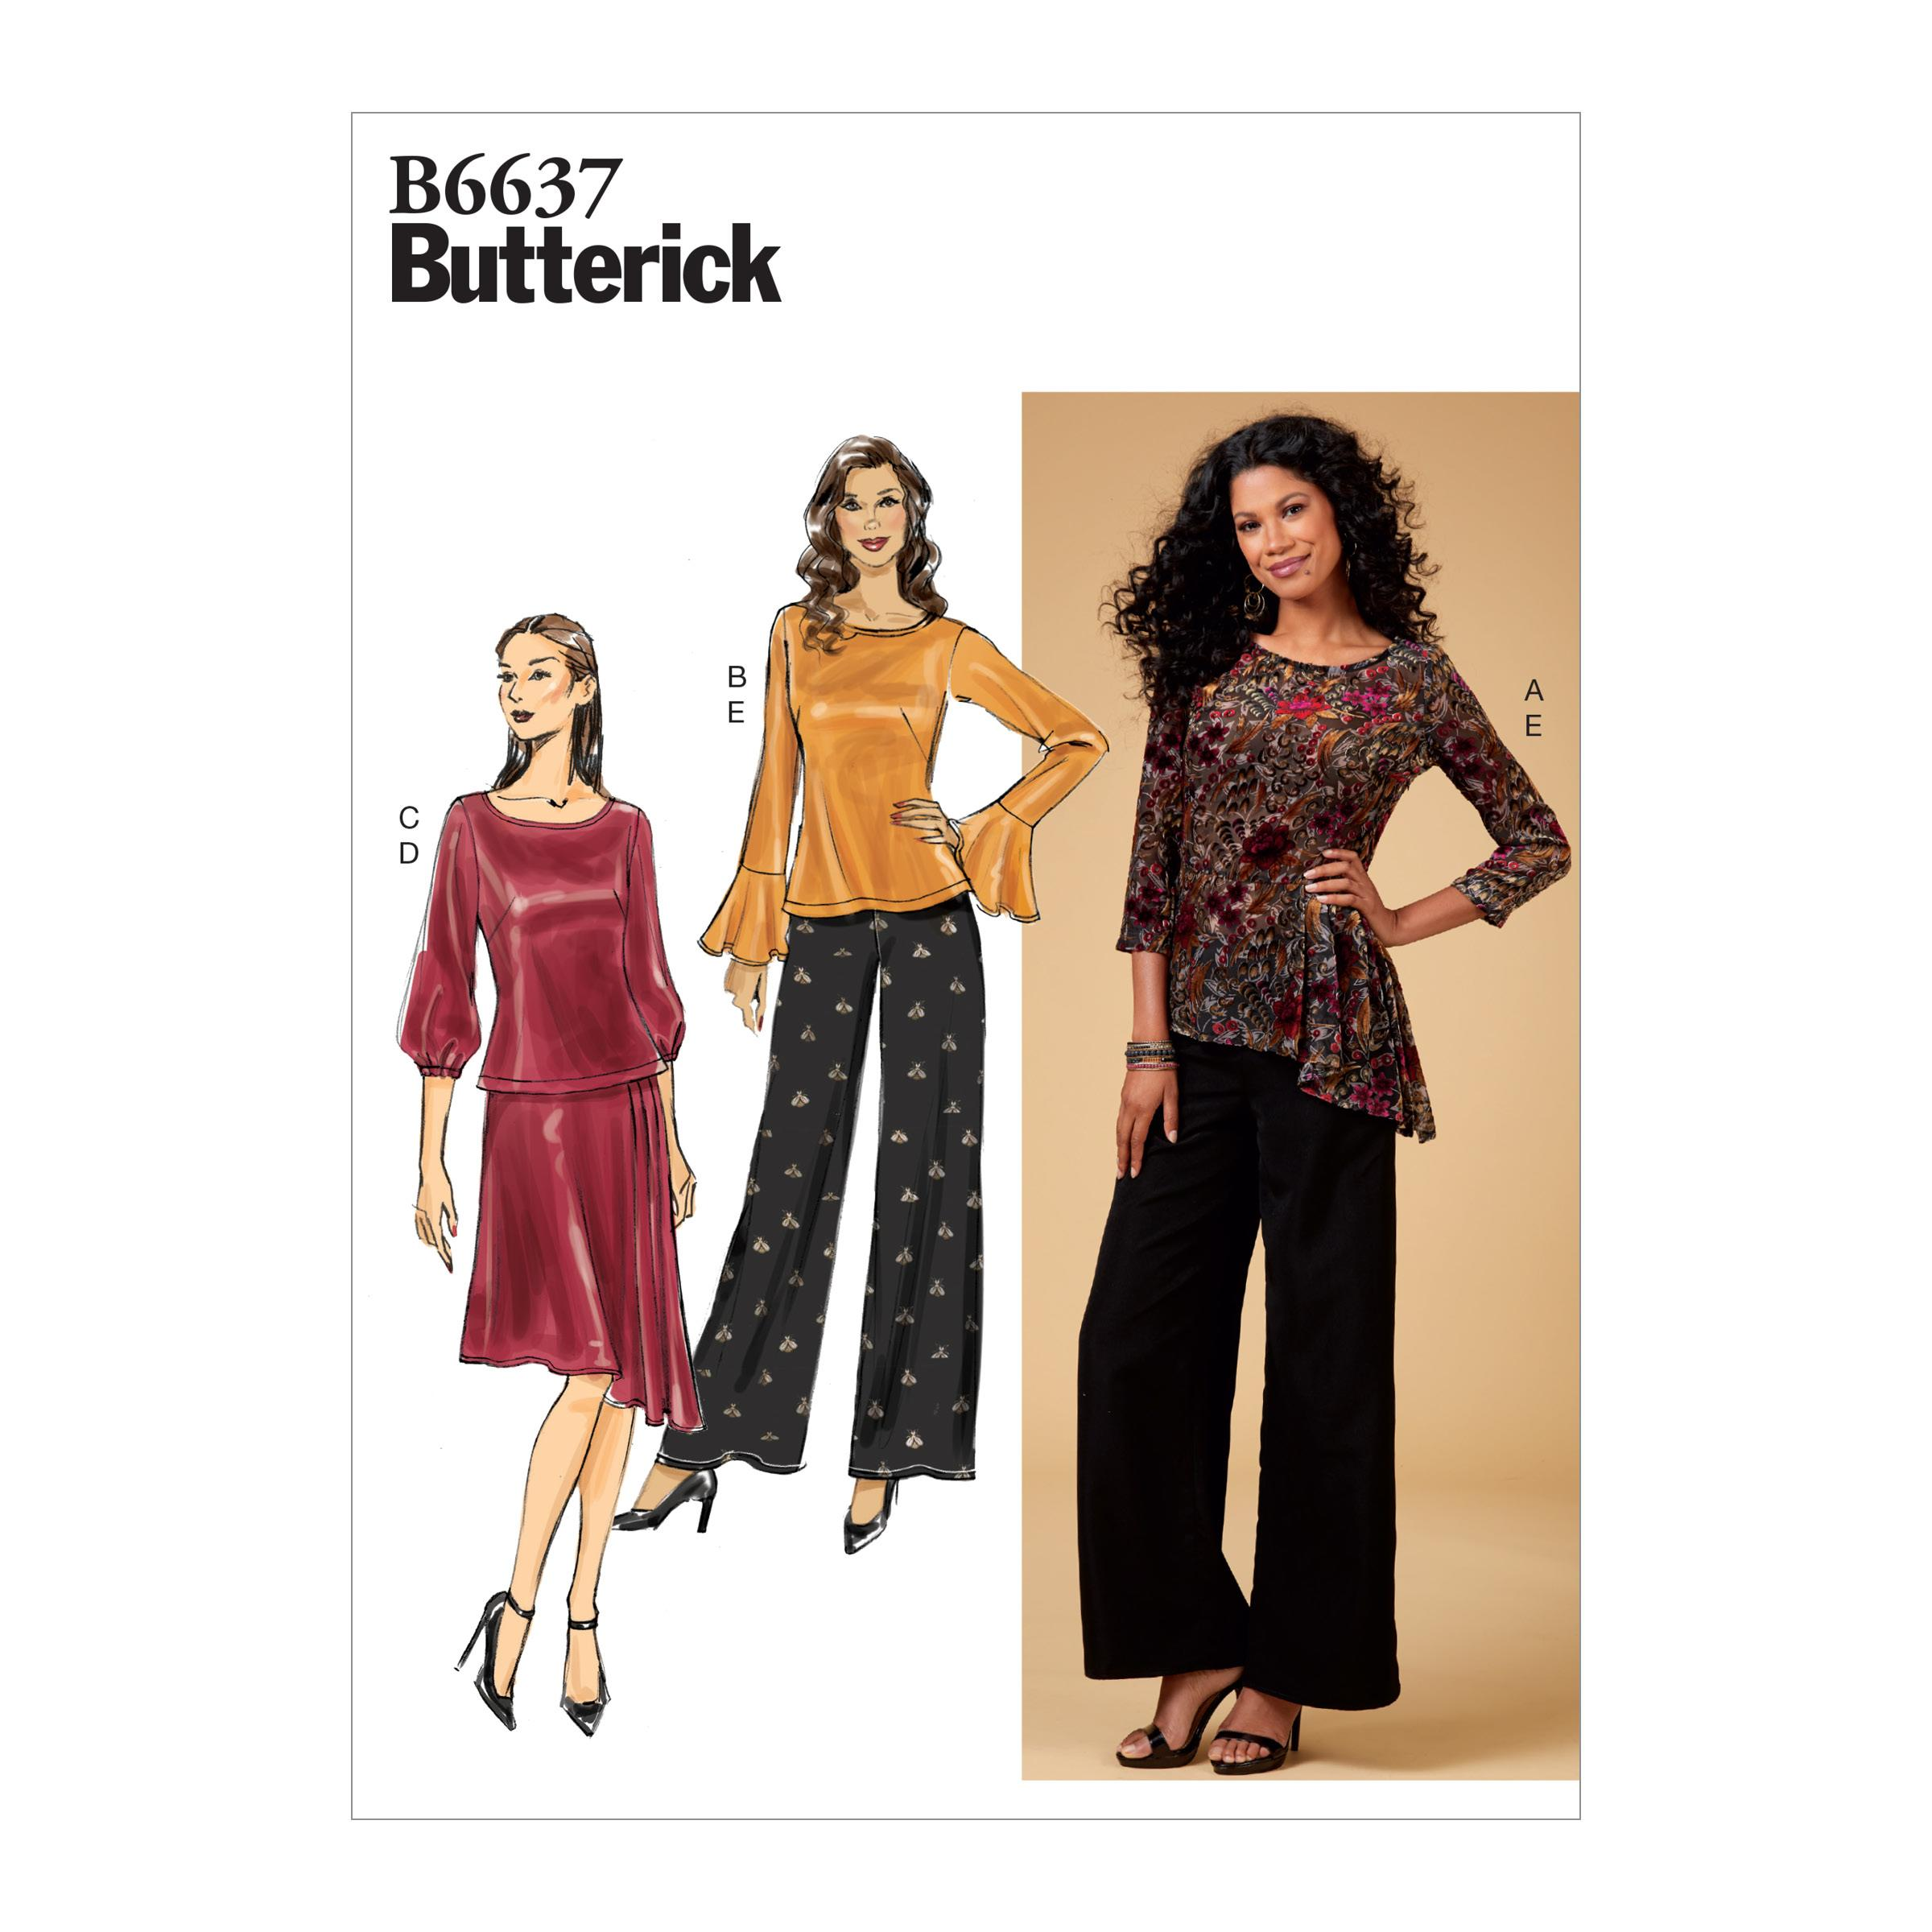 Butterick B6637 Misses'/Misses' Petite Top, Skirt and Pants